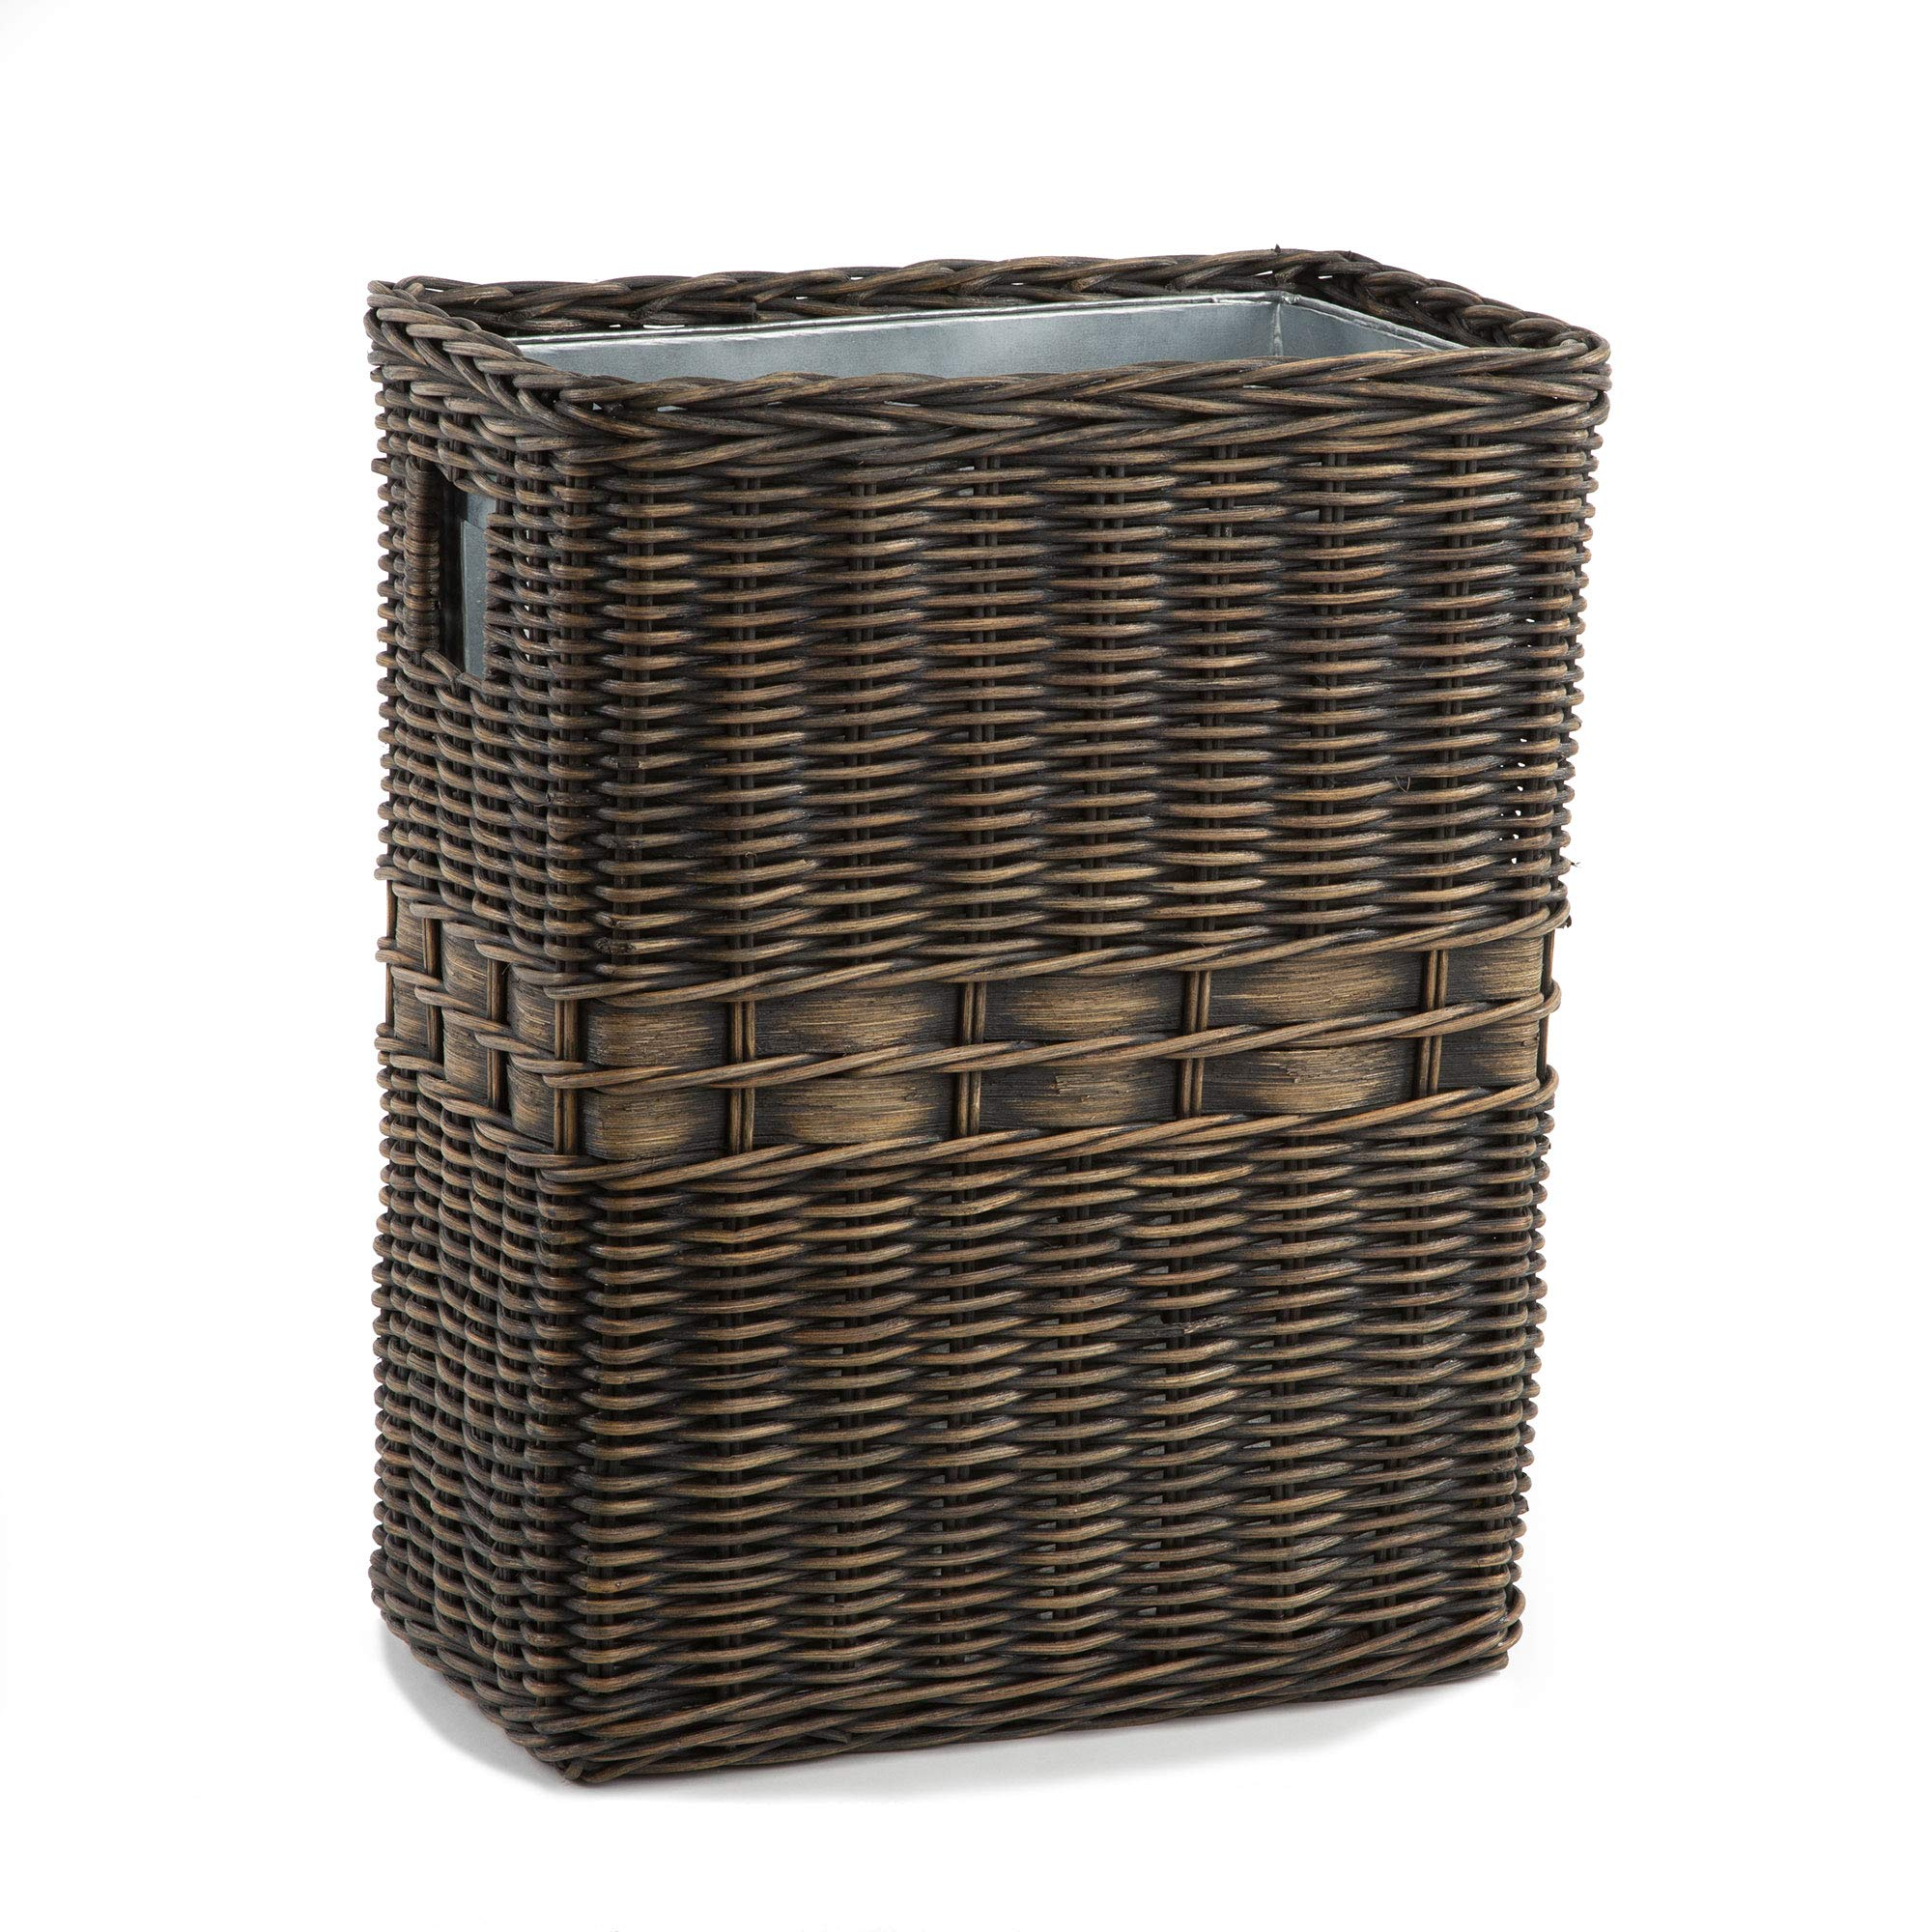 The Basket Lady Large Wicker Waste Basket with Metal Liner, One Size, Antique Walnut Brown